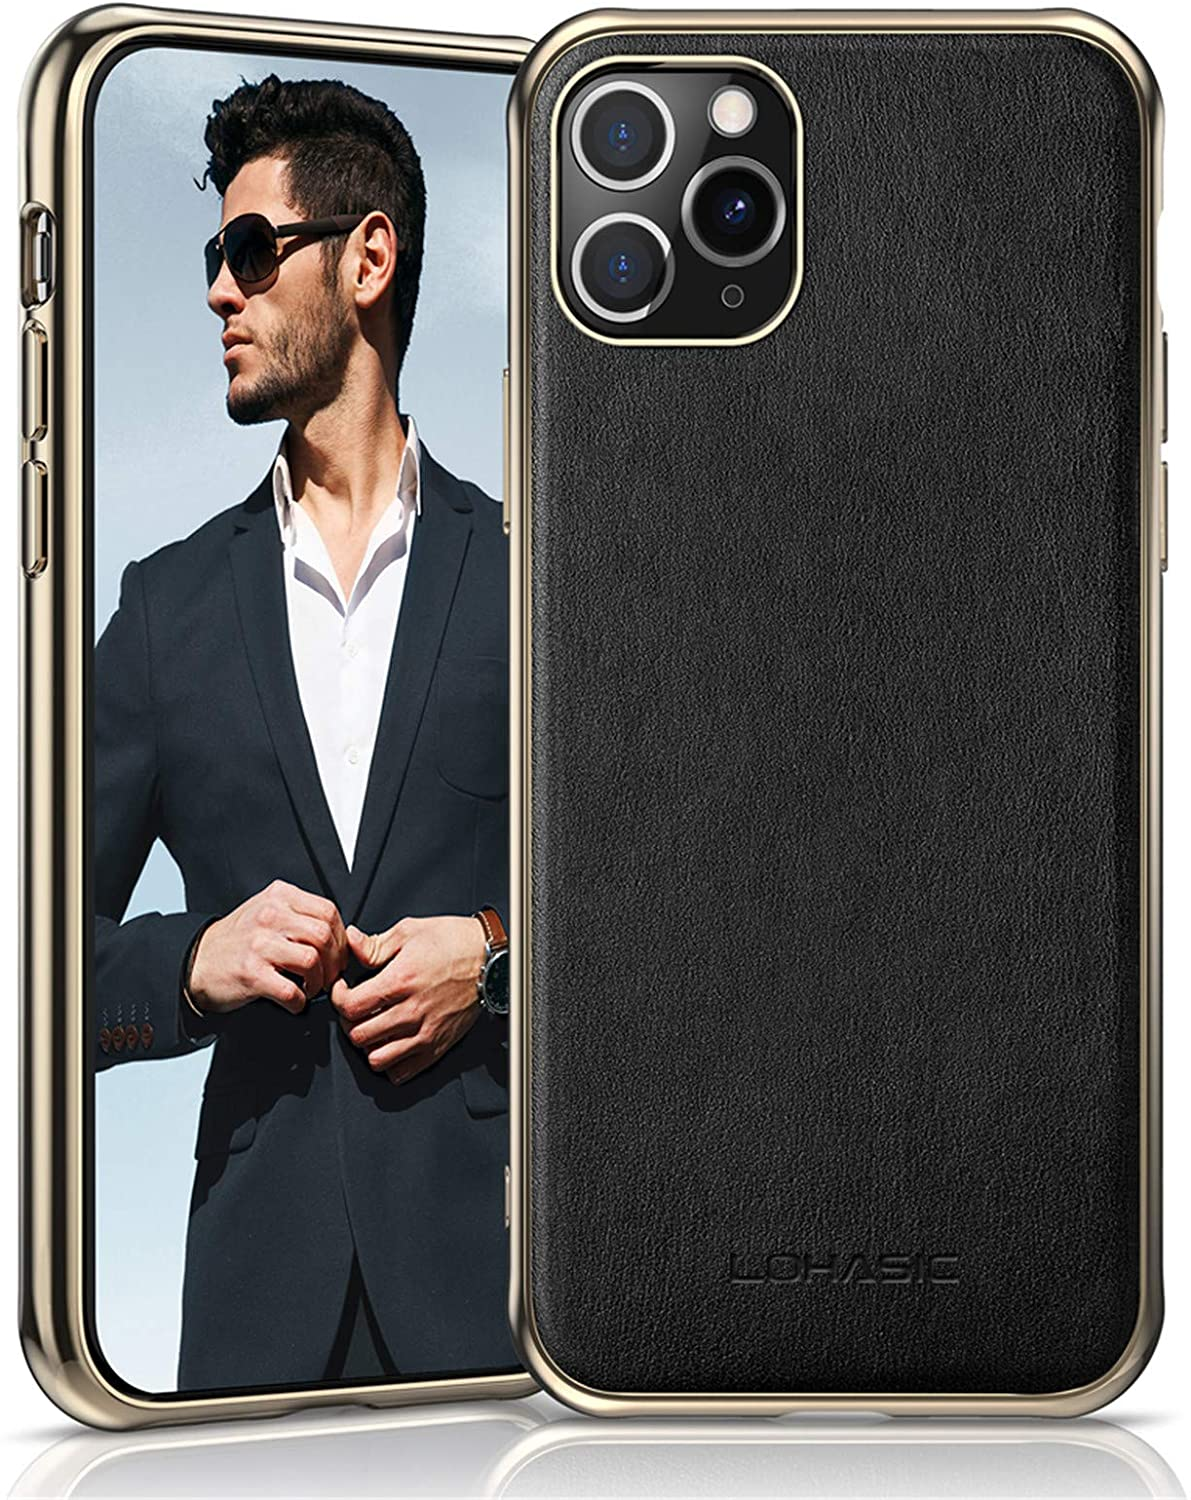 LOHASIC iPhone 11 Pro Max Case, Slim Fit Business PU Leather Elegant High-end Cover Anti-Slip Soft Grip Flexible Full Body Protective Phone Cases for Apple iPhone 11 Pro Max(2019) 6.5